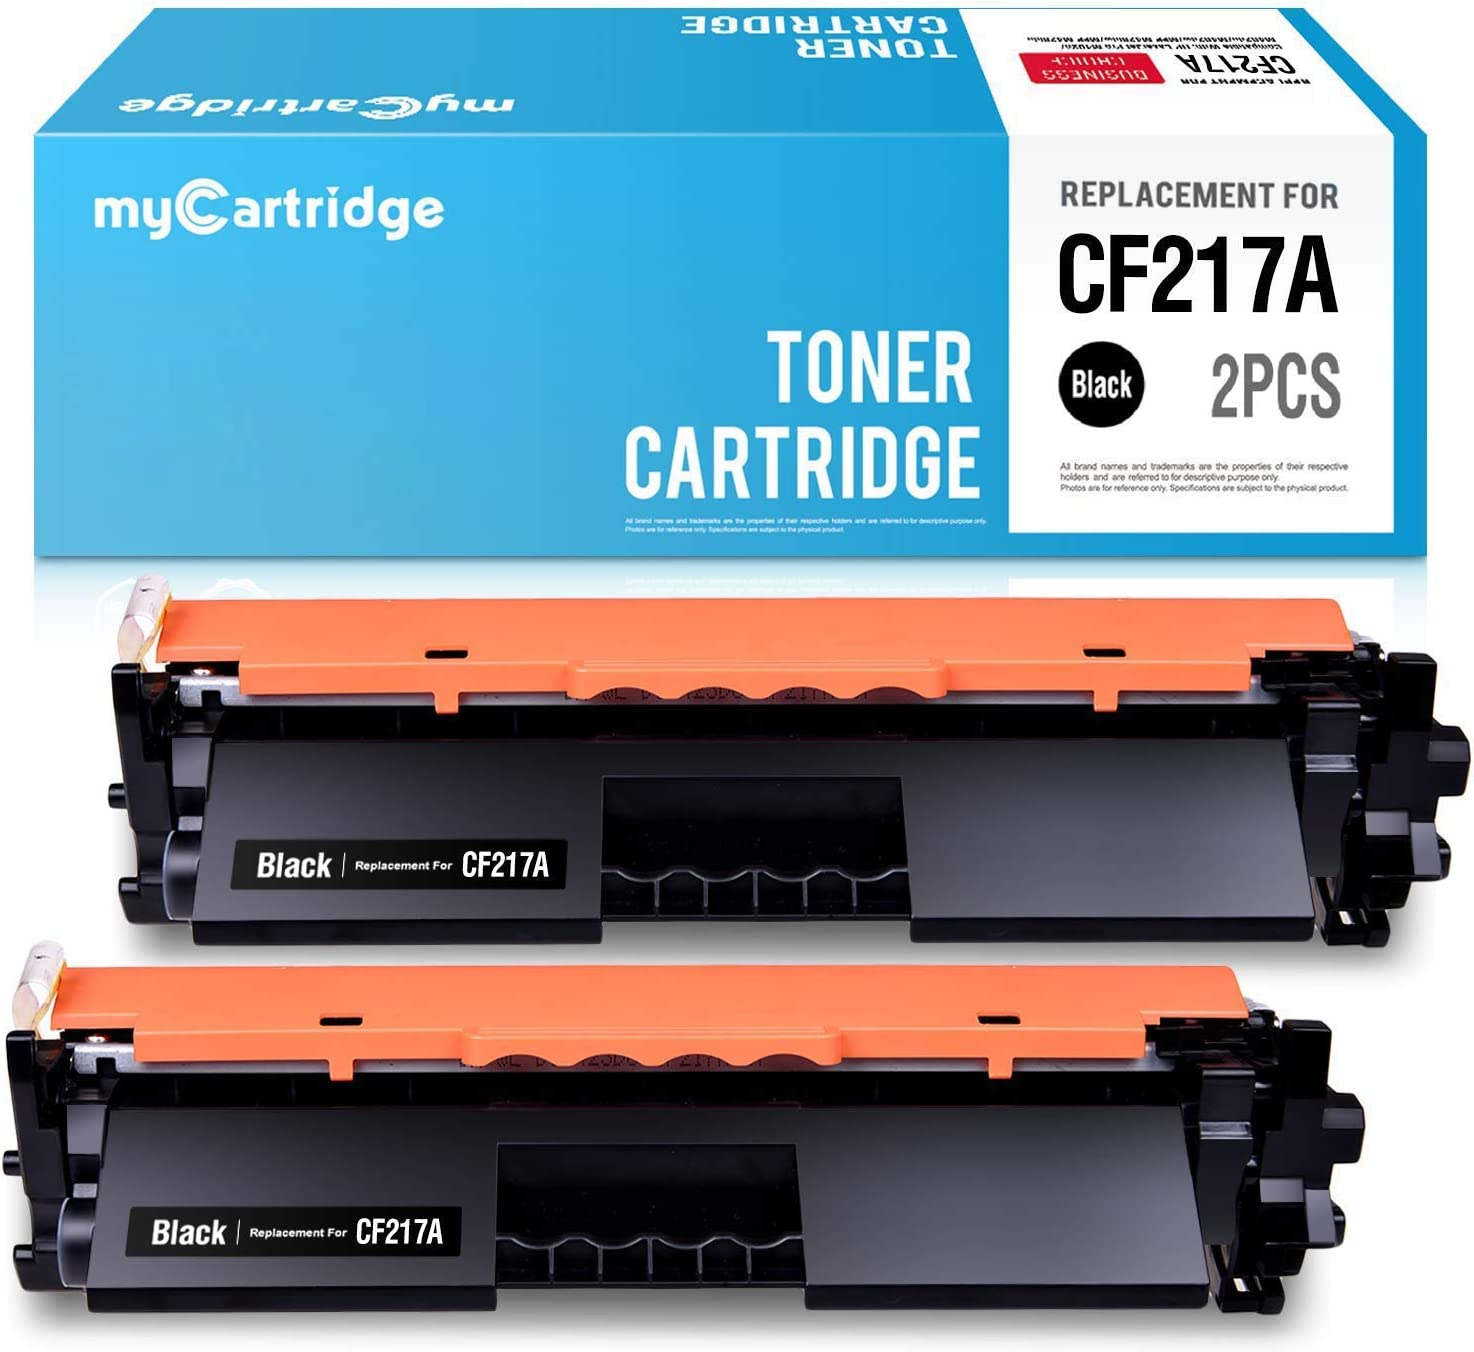 myCartridge Compatible Toner Cartridge Replacement for HP 17A CF217A M102w M130nw Toner Cartridge with Chip Fit for HP MFP M130fw Pro M102w M130fn M130a M102a Laserjet Printer